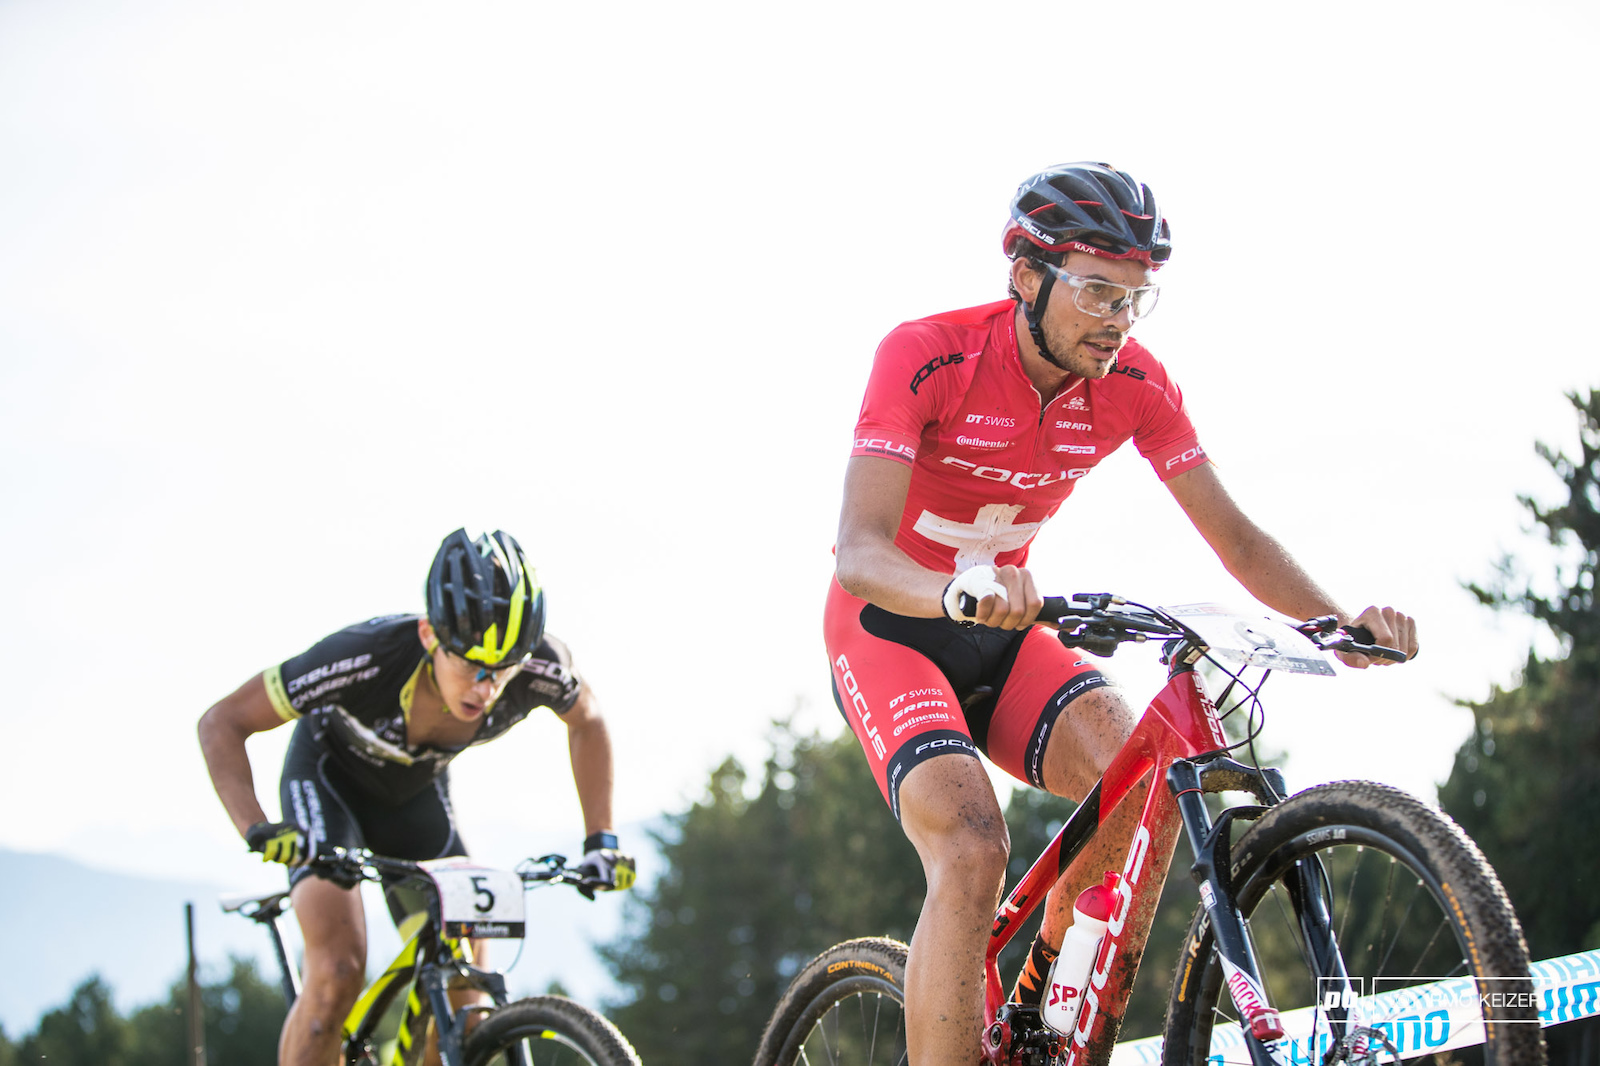 Marcel Guerrini rode a solid race which saw him take the win in Andorra.